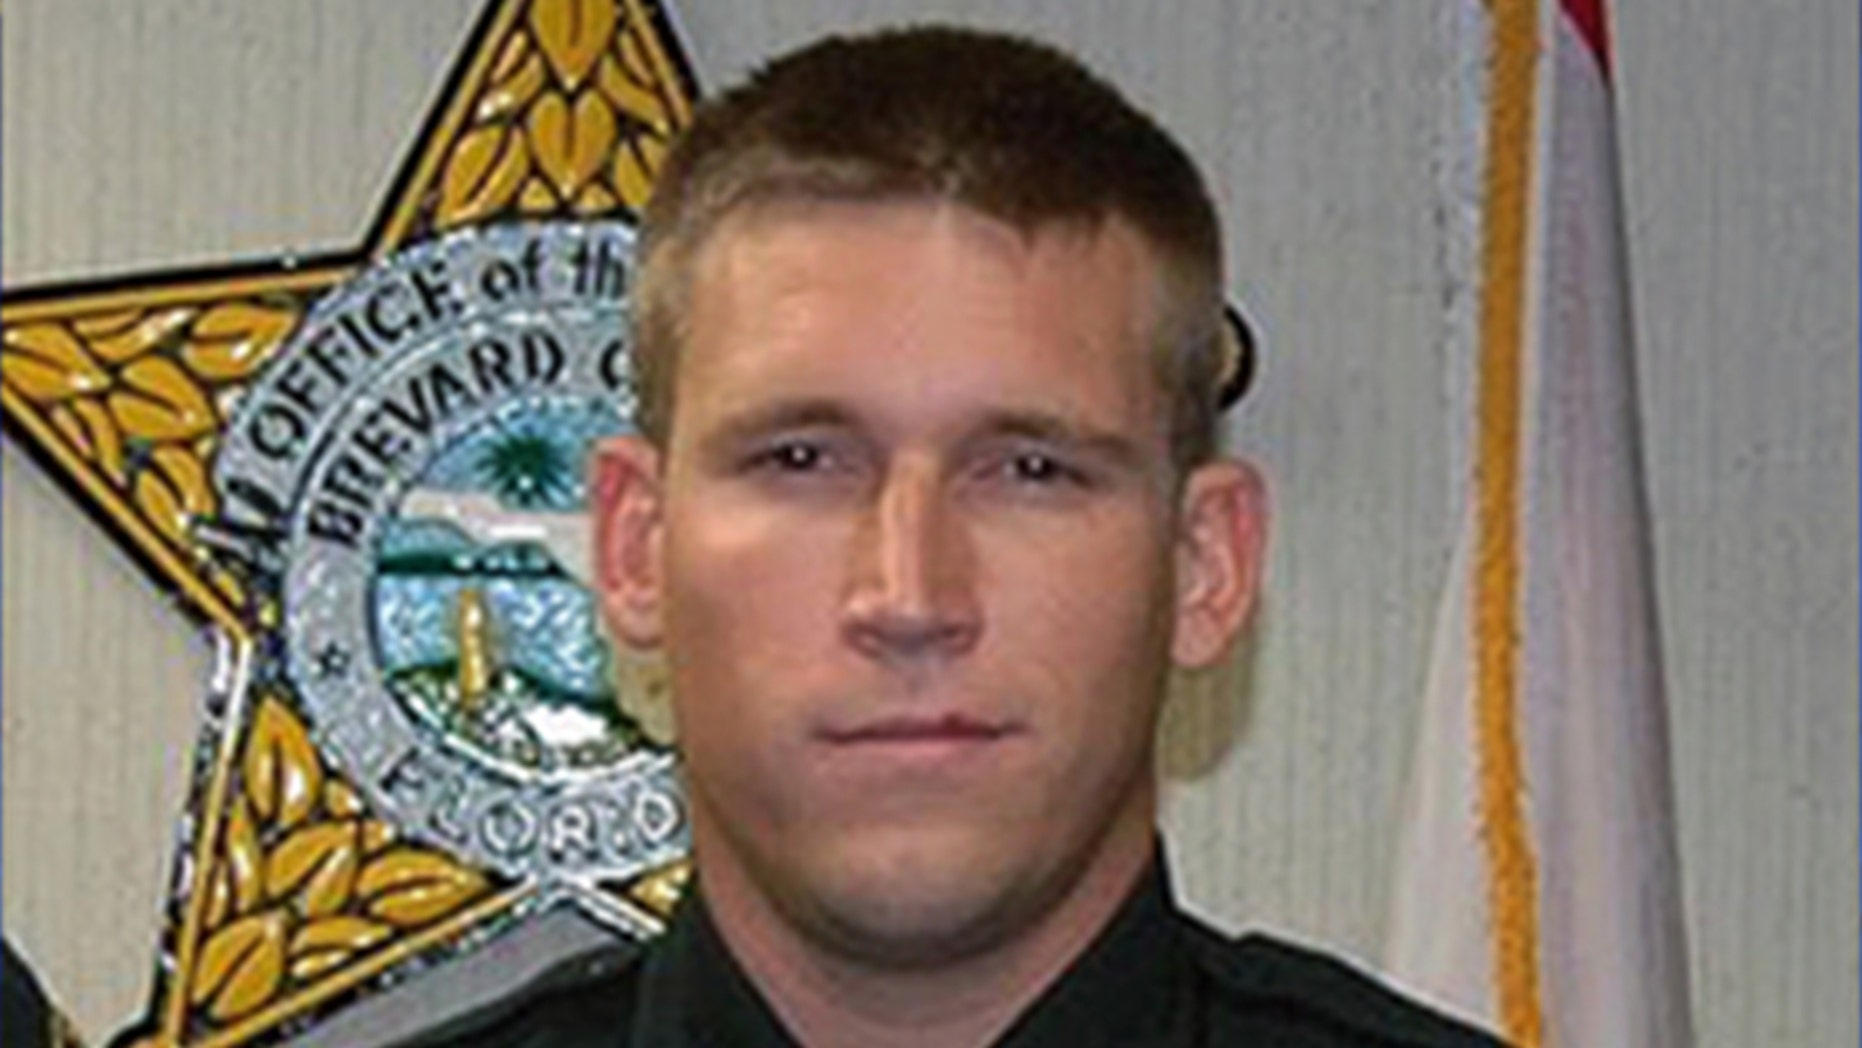 Brevard County Deputy Nicholas Worthy was fired from his job and arrested Thursday after police searched his home.